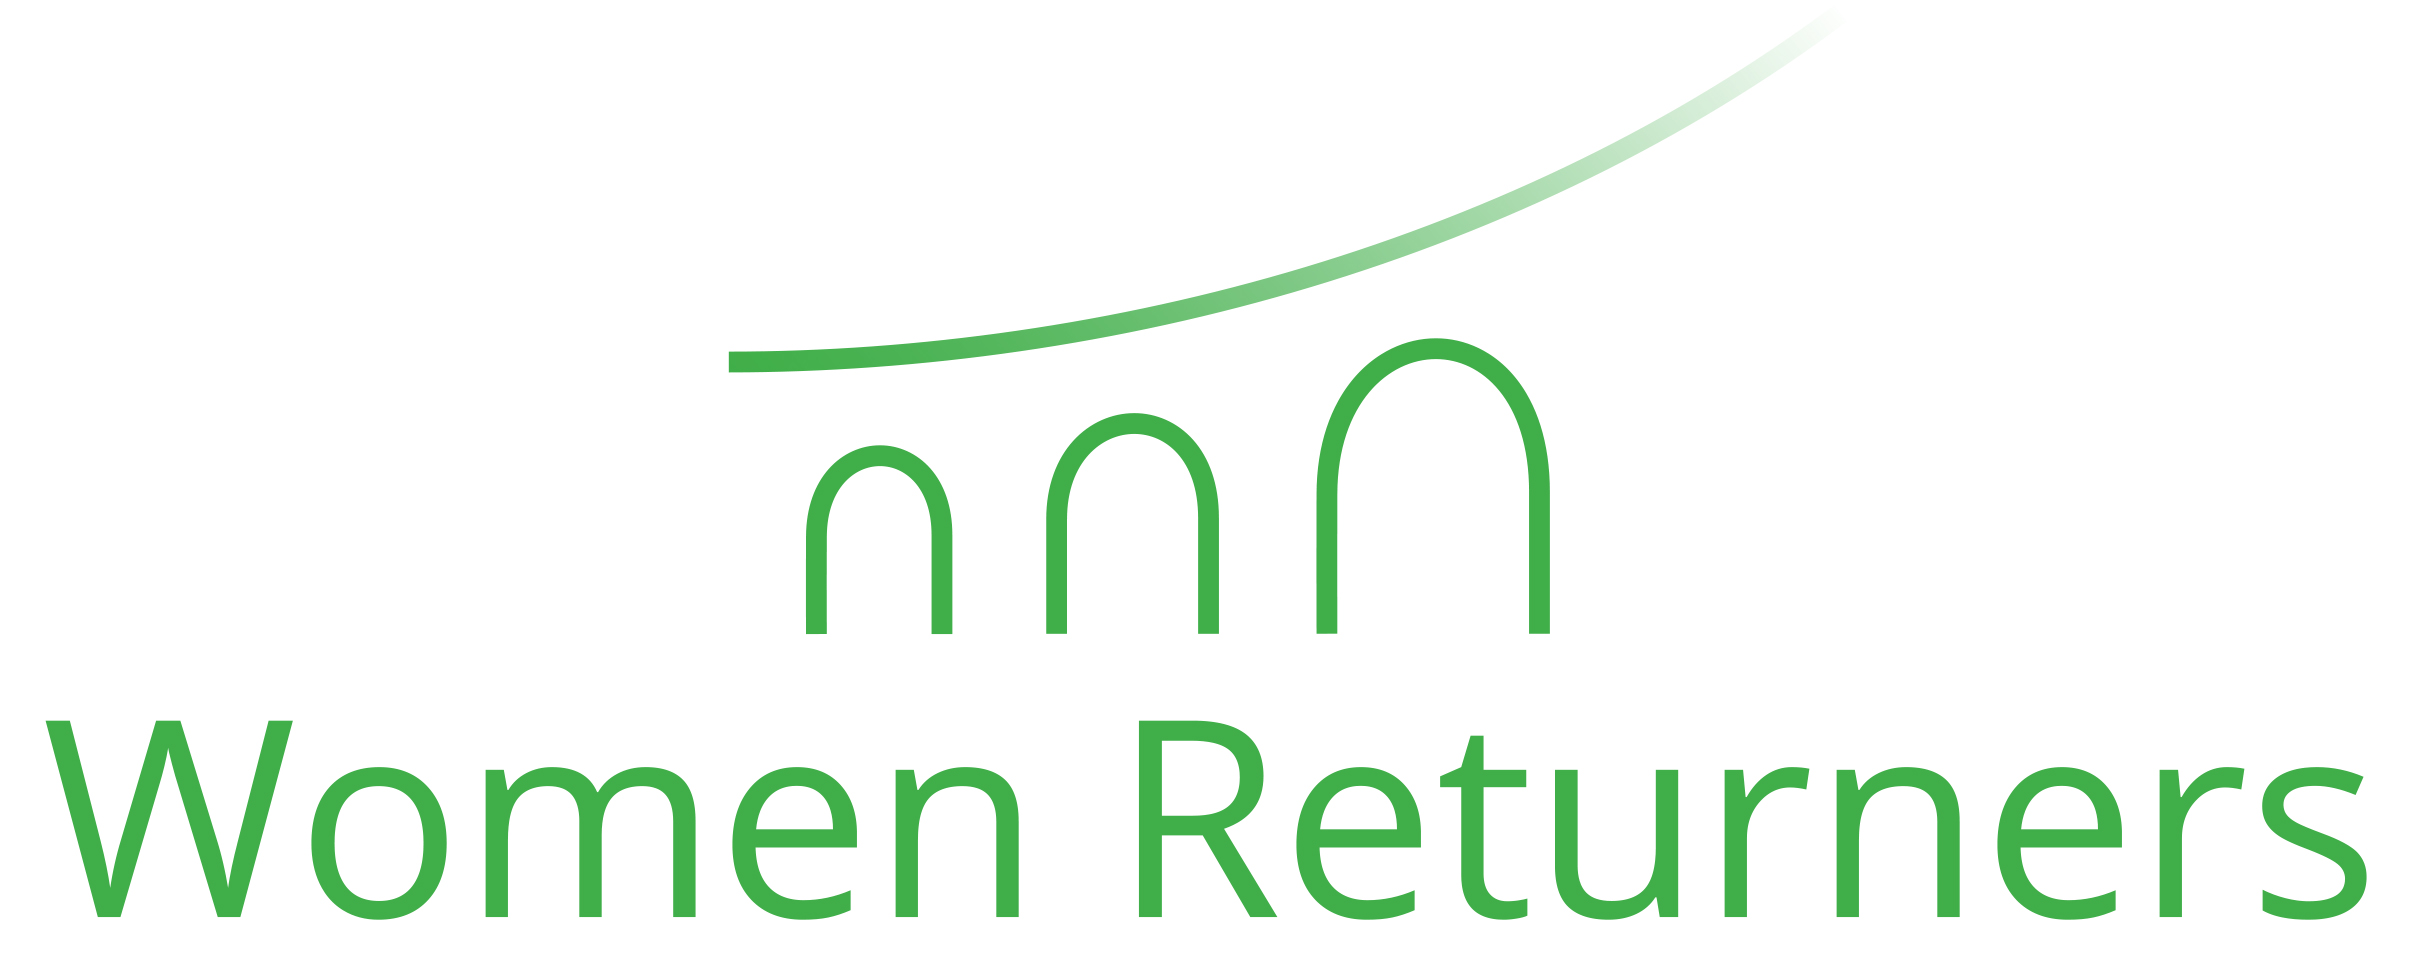 Women returners bridge logo